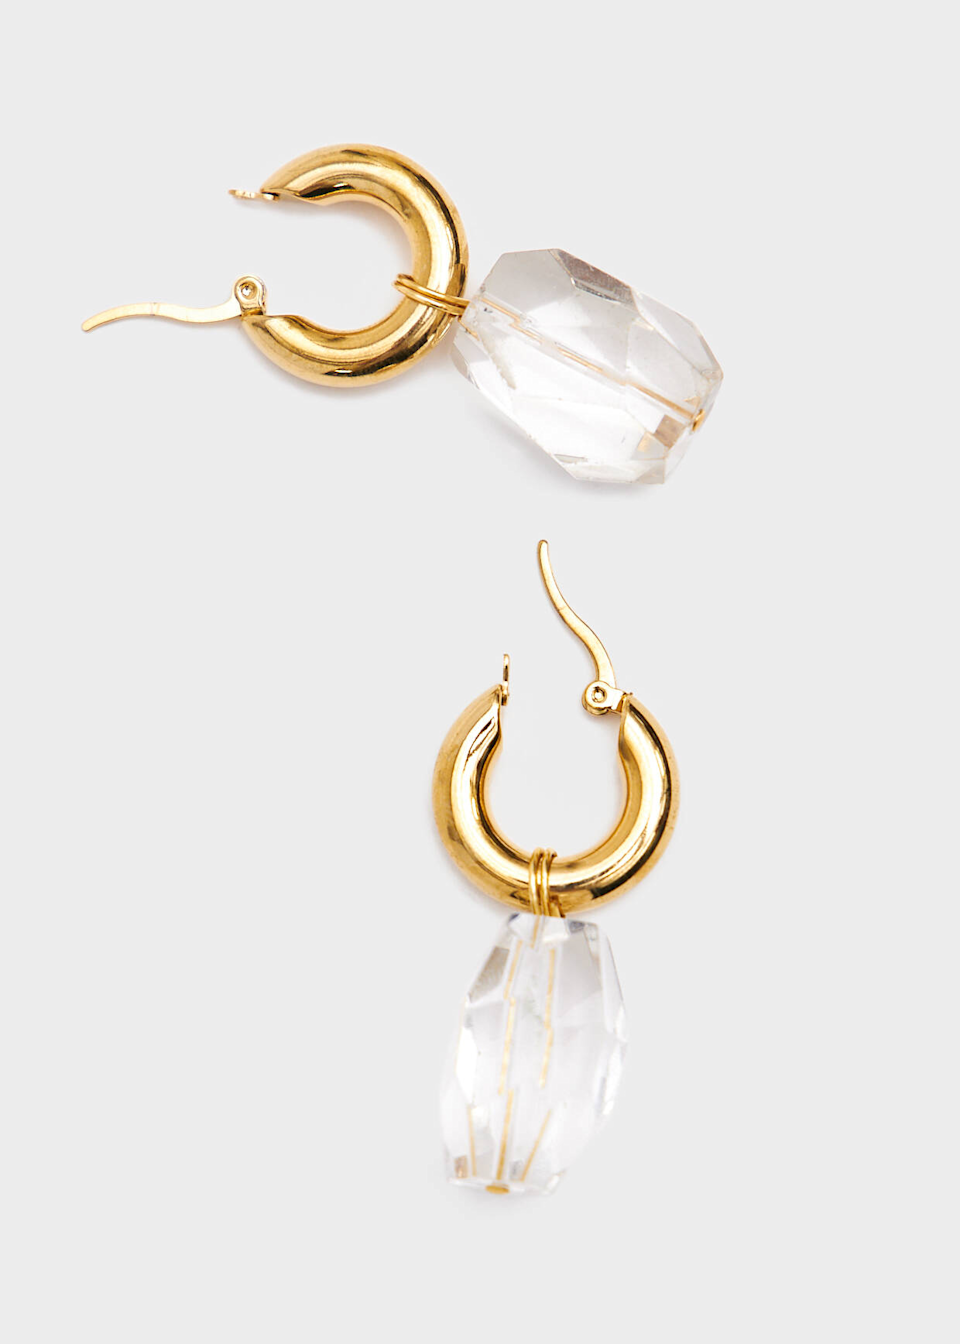 """With the right jewelry, any outfit (even one consisting of track shorts and a crewneck) can be Insta-worthy. <br> <br> <strong>ALONA</strong> Candice Earrings, $, available at <a href=""""https://go.skimresources.com/?id=30283X879131&url=https%3A%2F%2Fneedsupply.com%2Fcandice-earrings%2FWPF13632.html"""" rel=""""nofollow noopener"""" target=""""_blank"""" data-ylk=""""slk:Need Supply"""" class=""""link rapid-noclick-resp"""">Need Supply</a>"""